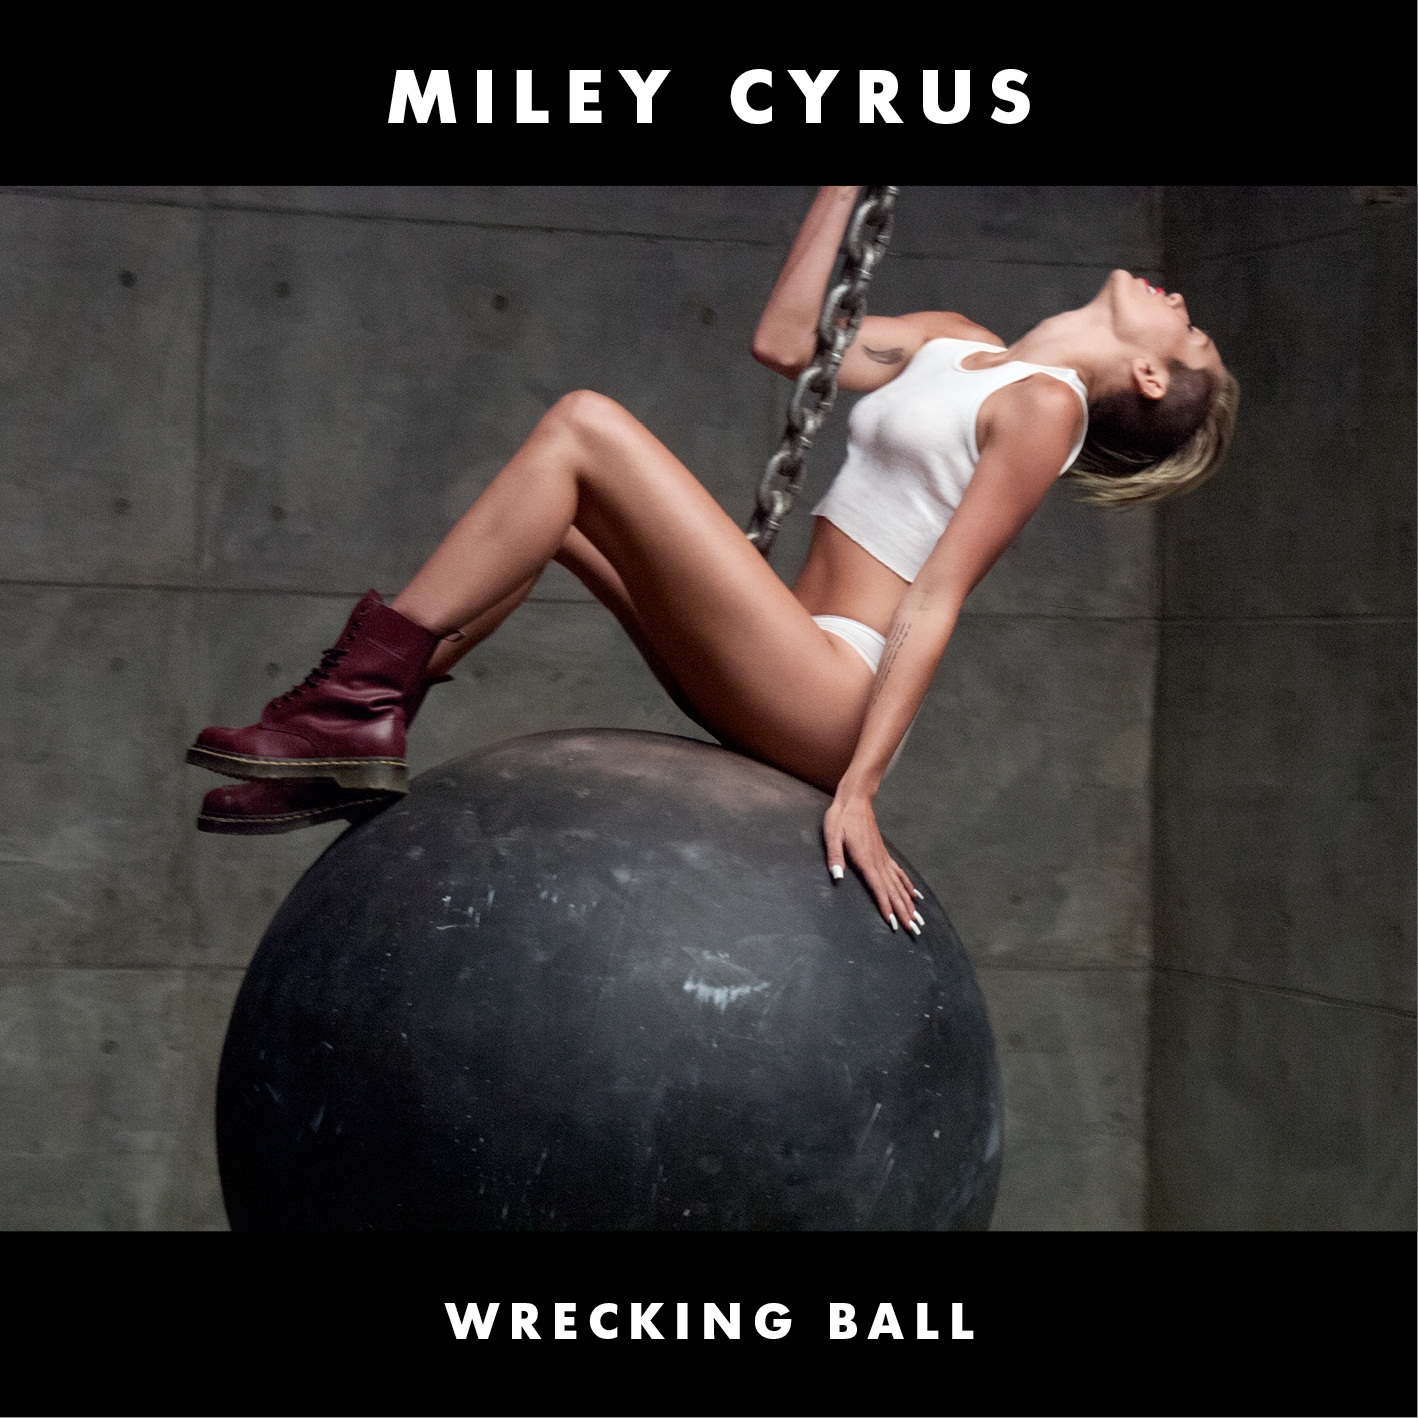 Miley's wrecking walls, but we're wondering what this means for her career...